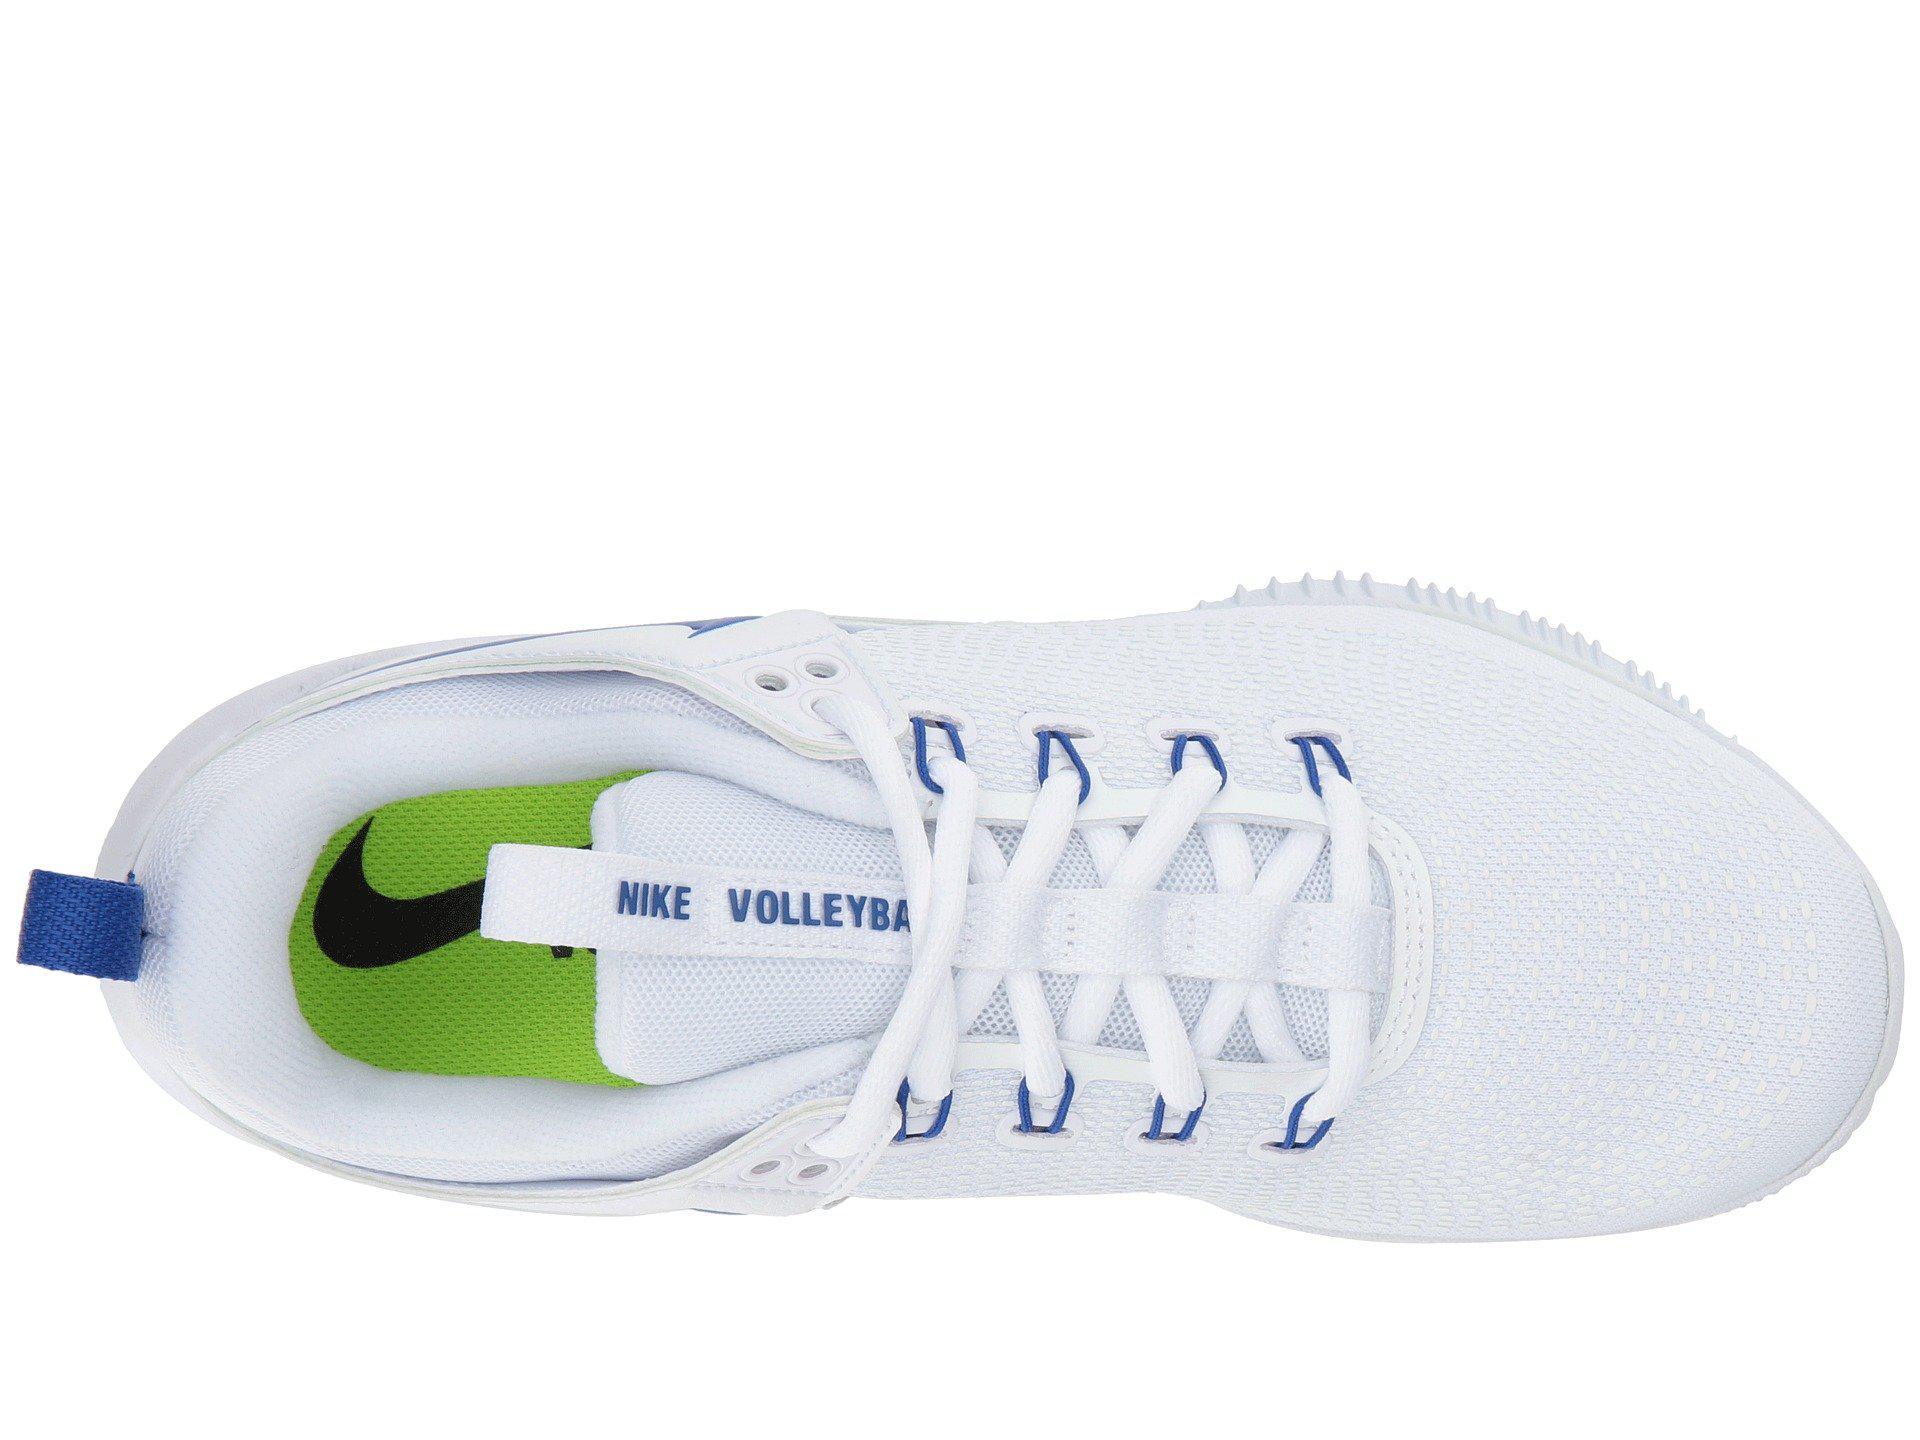 68ae9a24bed2 Nike - Zoom Hyperace 2 (white black) Women s Cross Training Shoes - Lyst.  View fullscreen